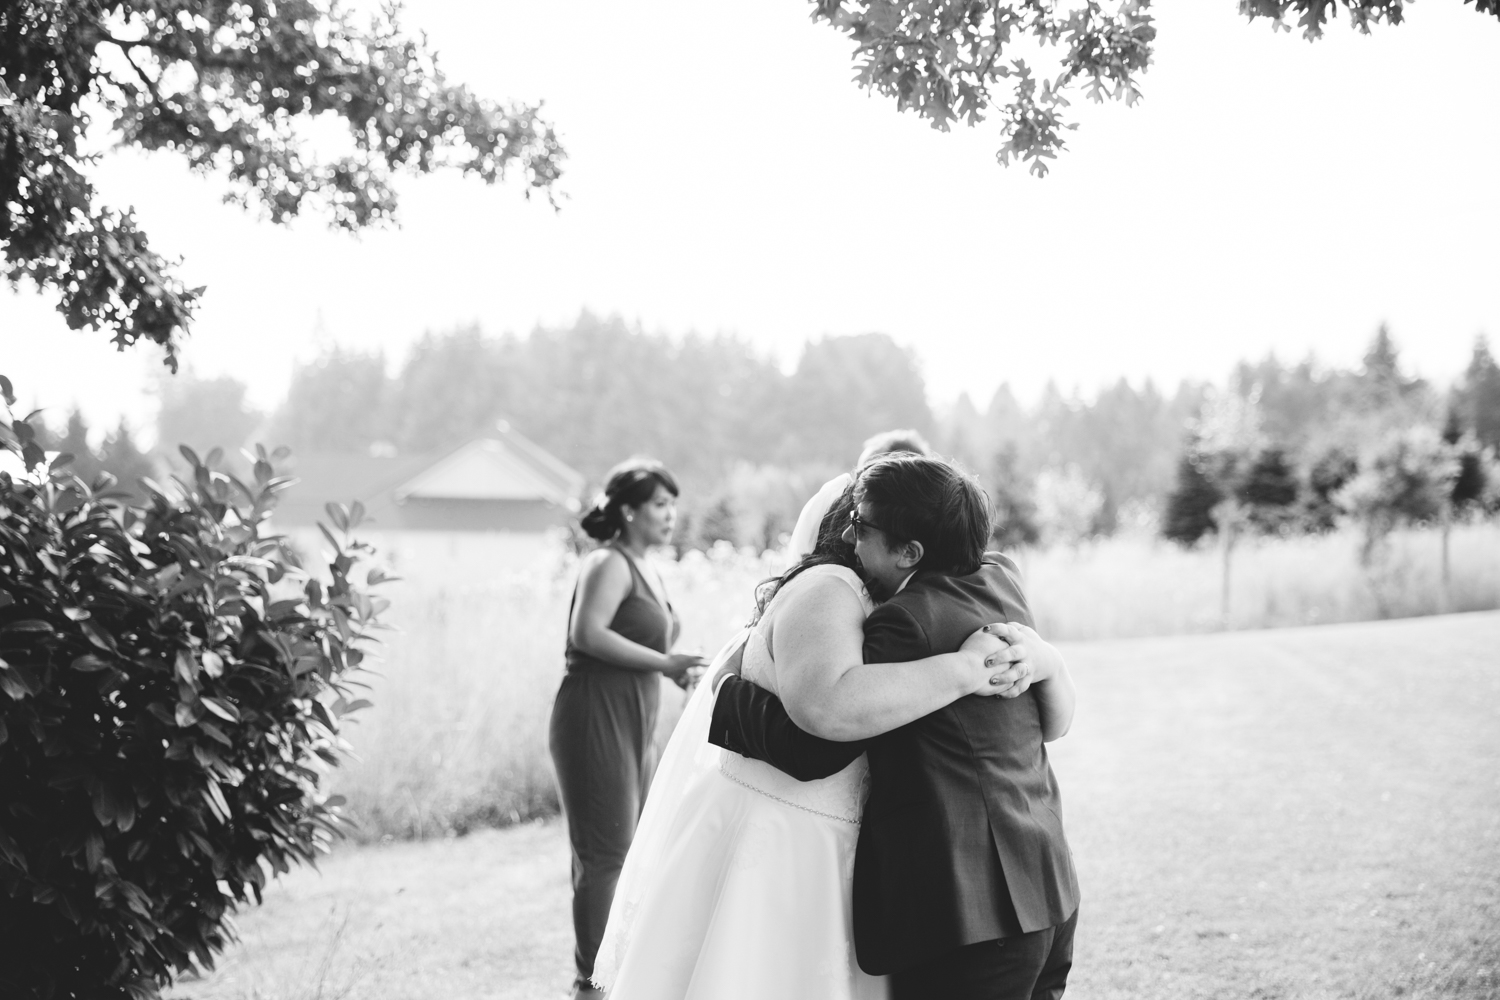 richmondvaweddingphotography-61.jpg